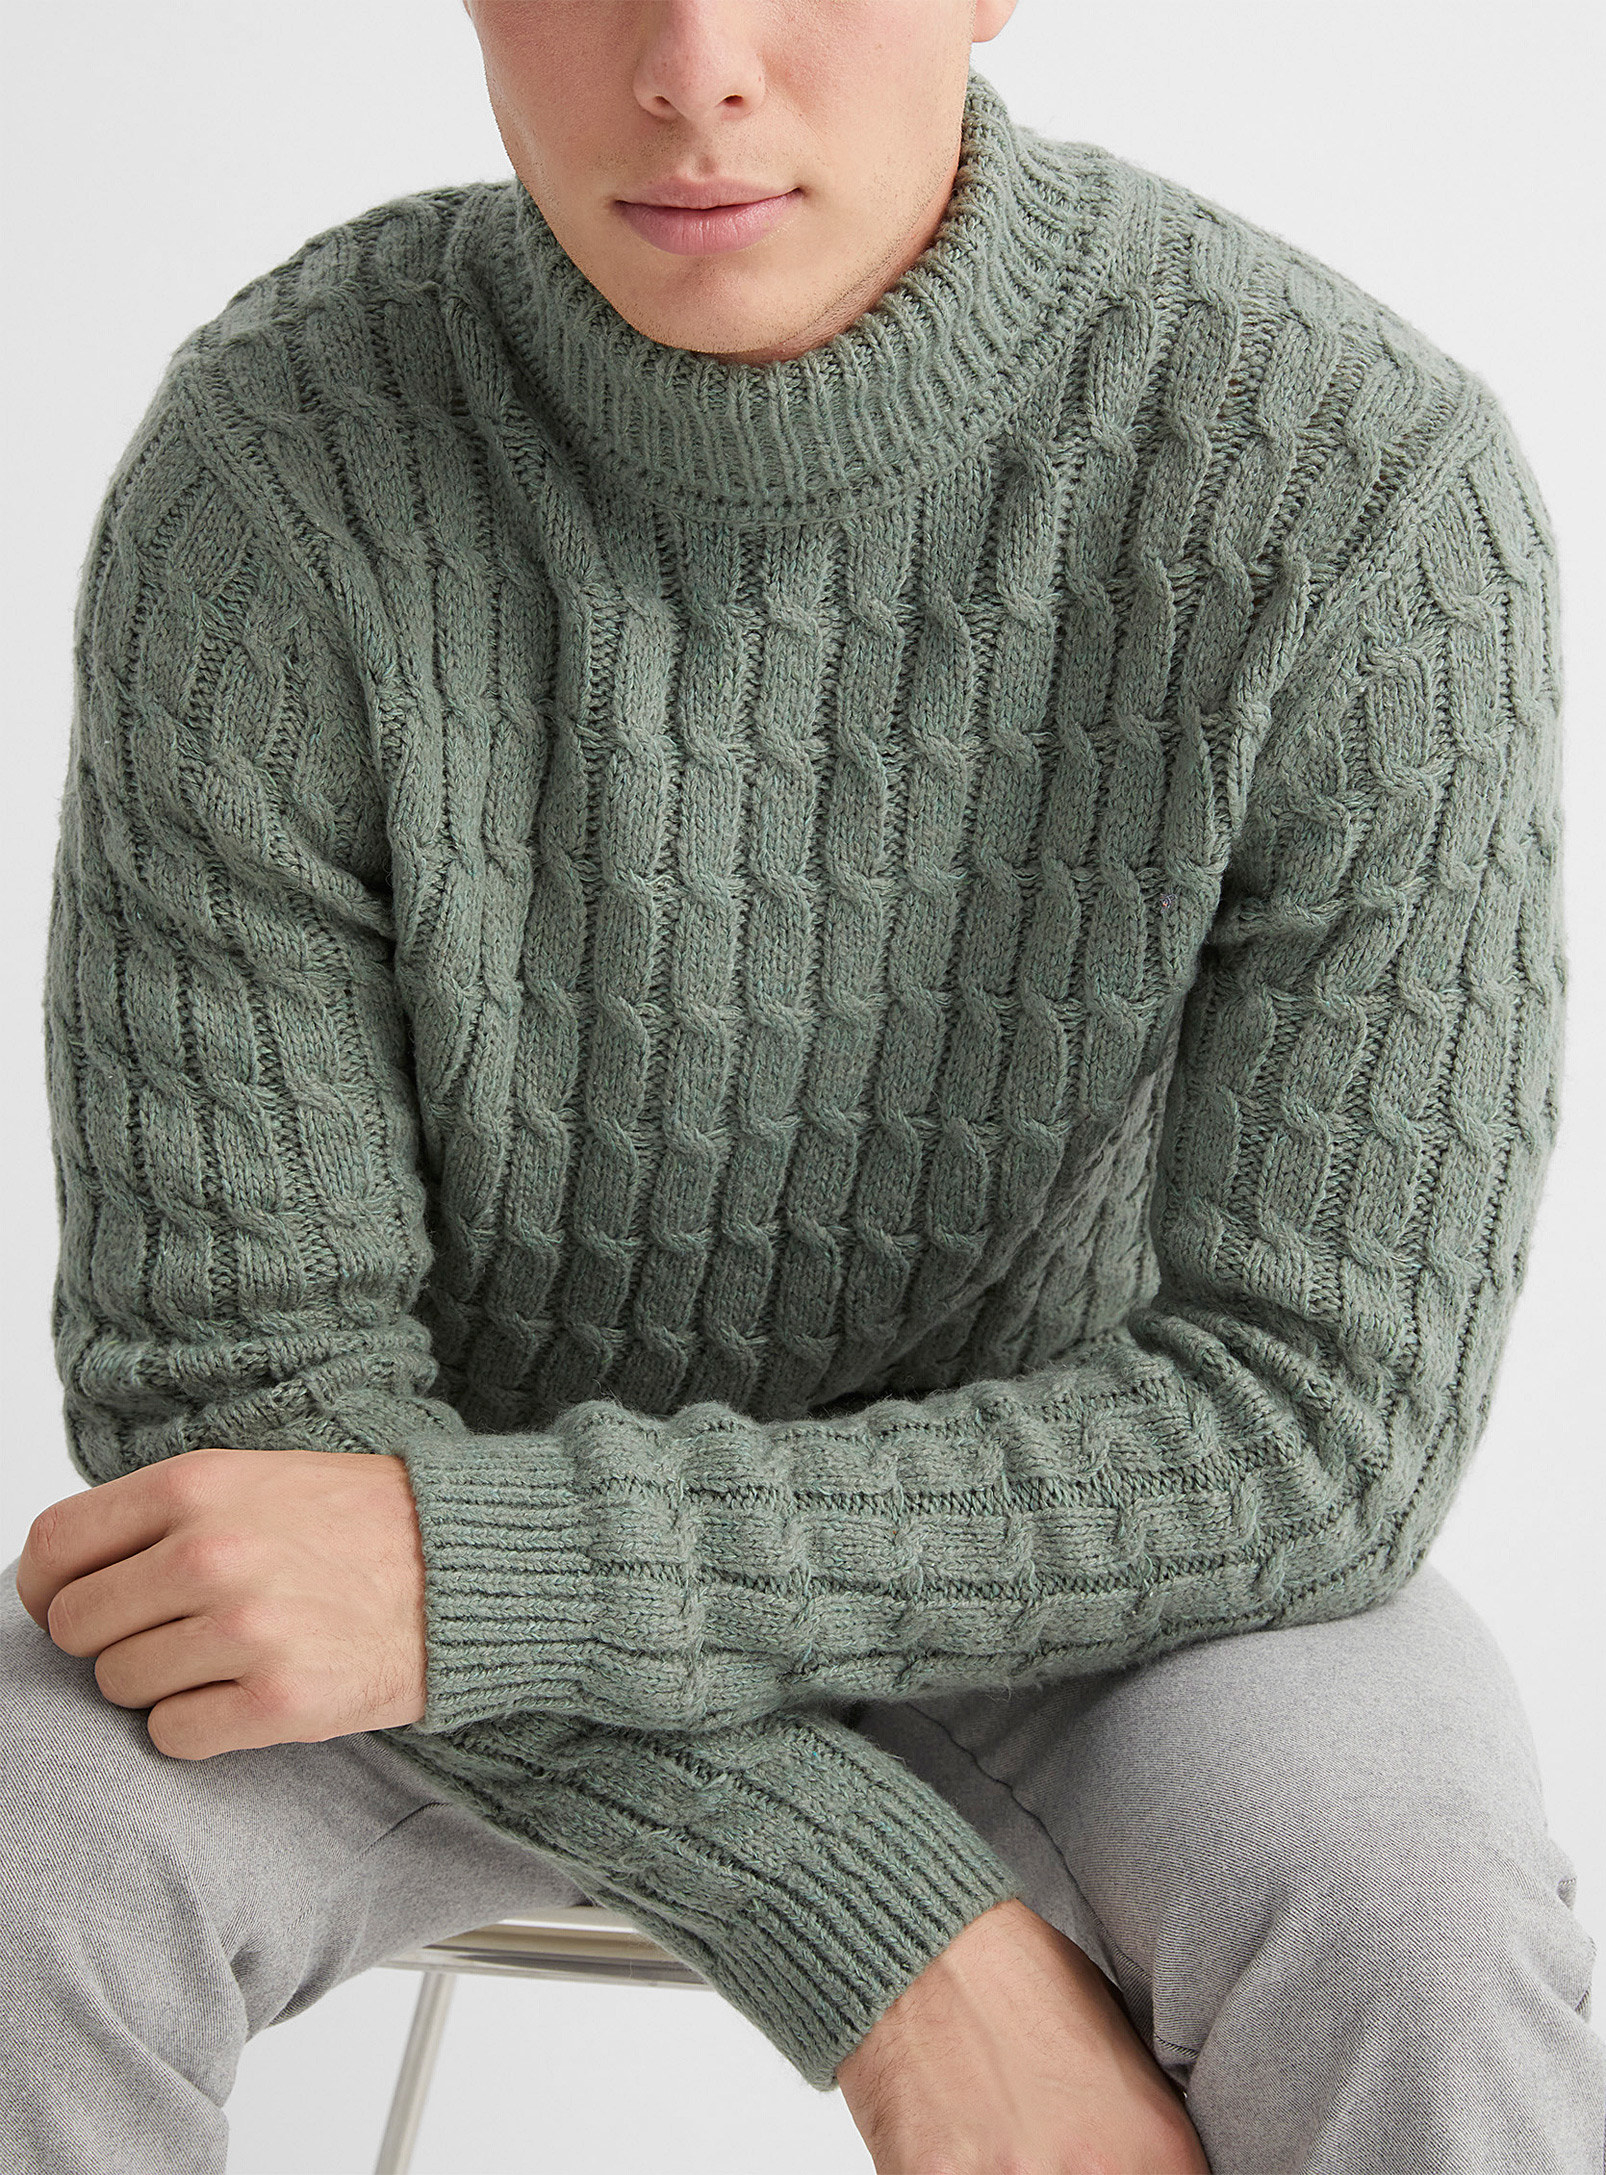 A person wearing a chunky knit sweater